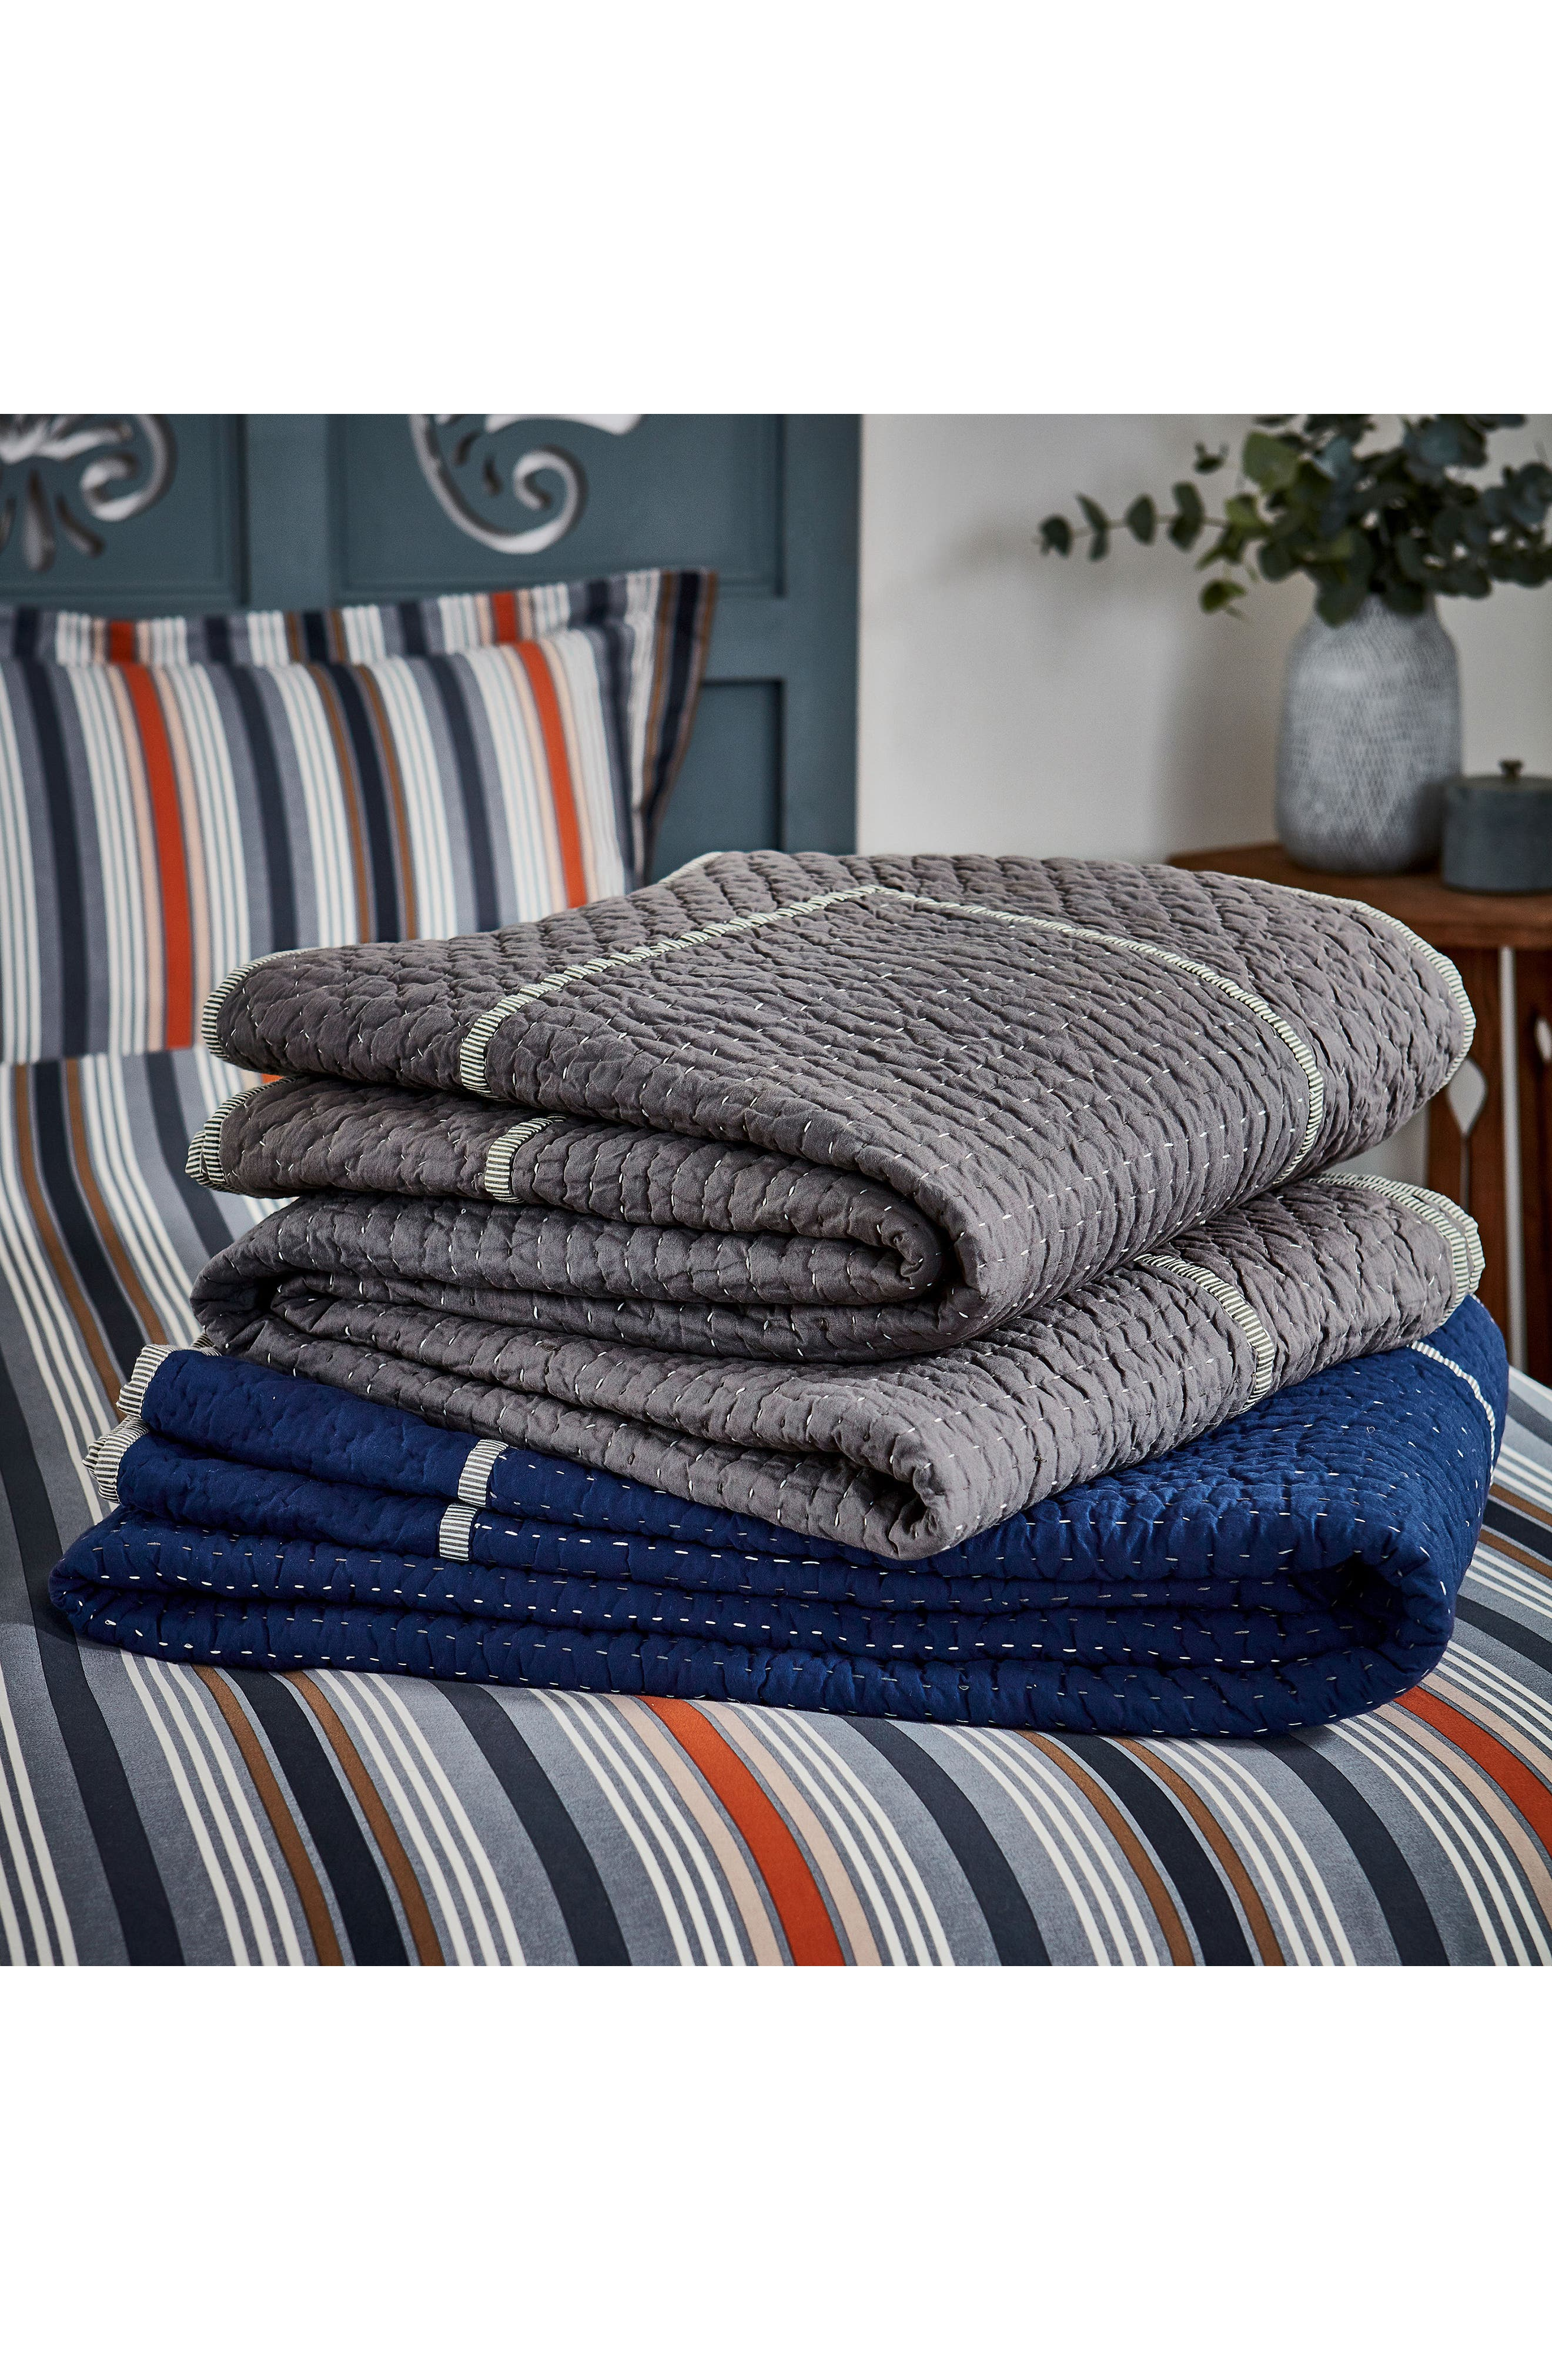 Ila Hand Stitched Kantha Quilt,                             Alternate thumbnail 4, color,                             Navy